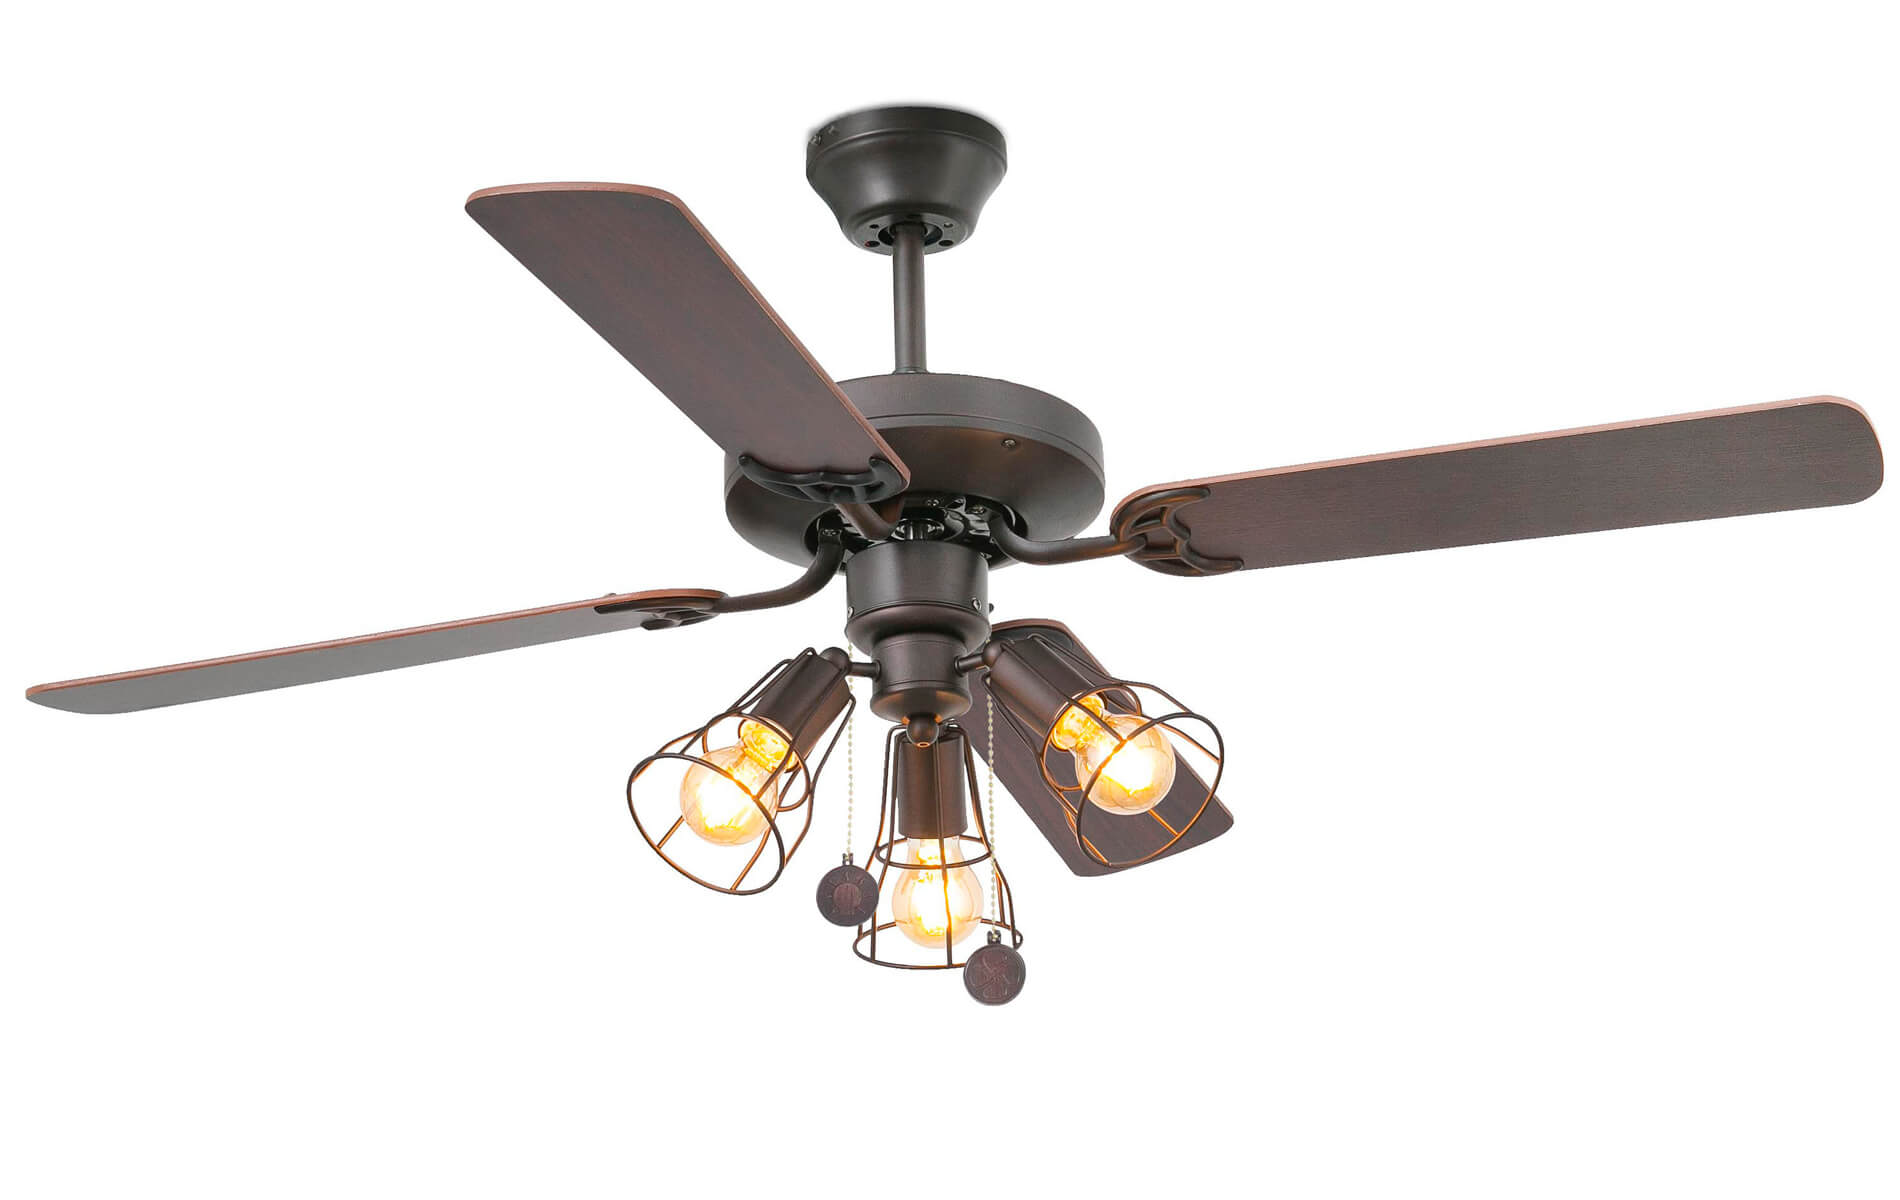 More information of Faro YAKARTA ceiling fan.